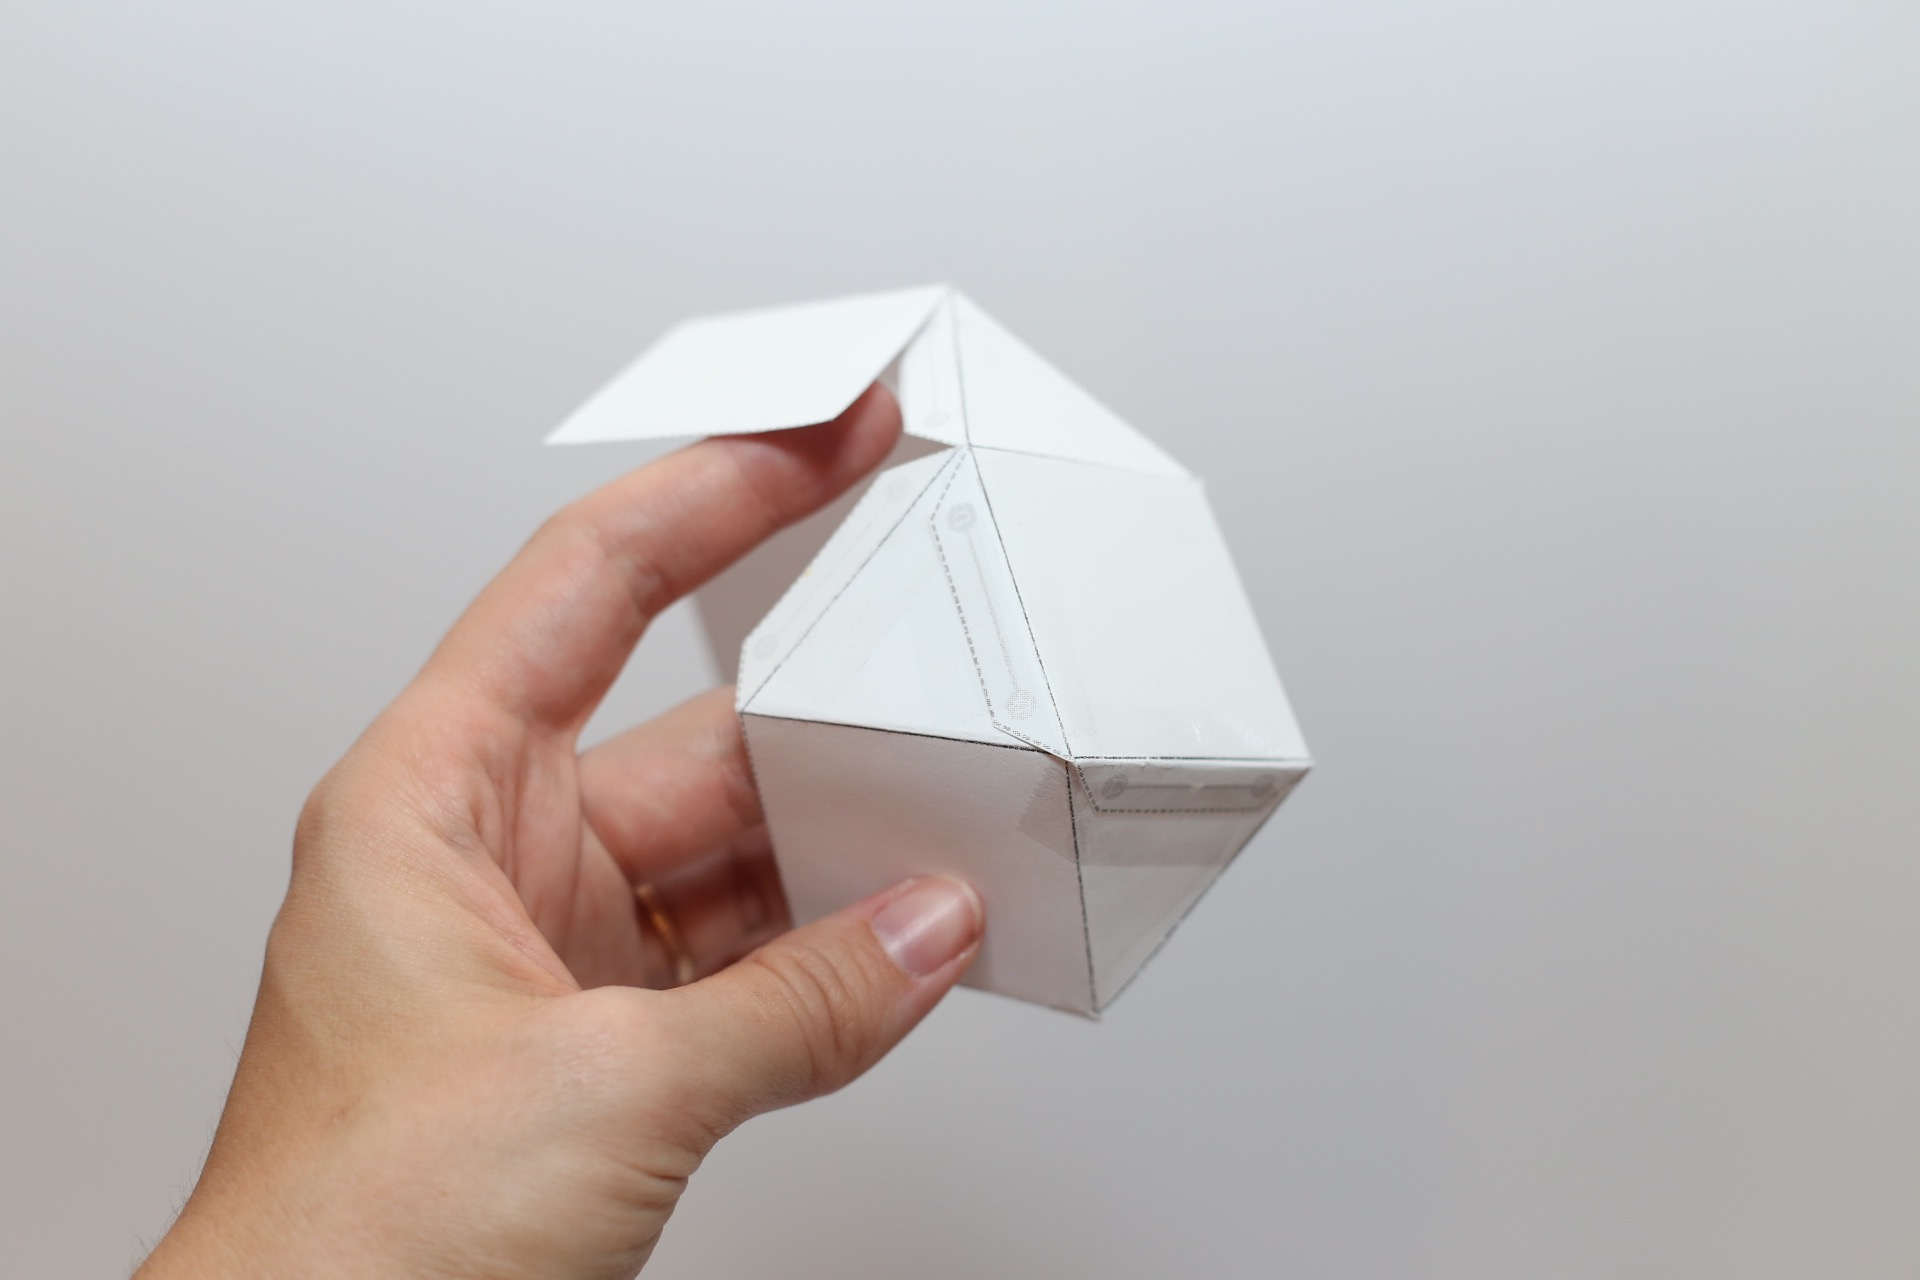 fold and assemble the candle making template